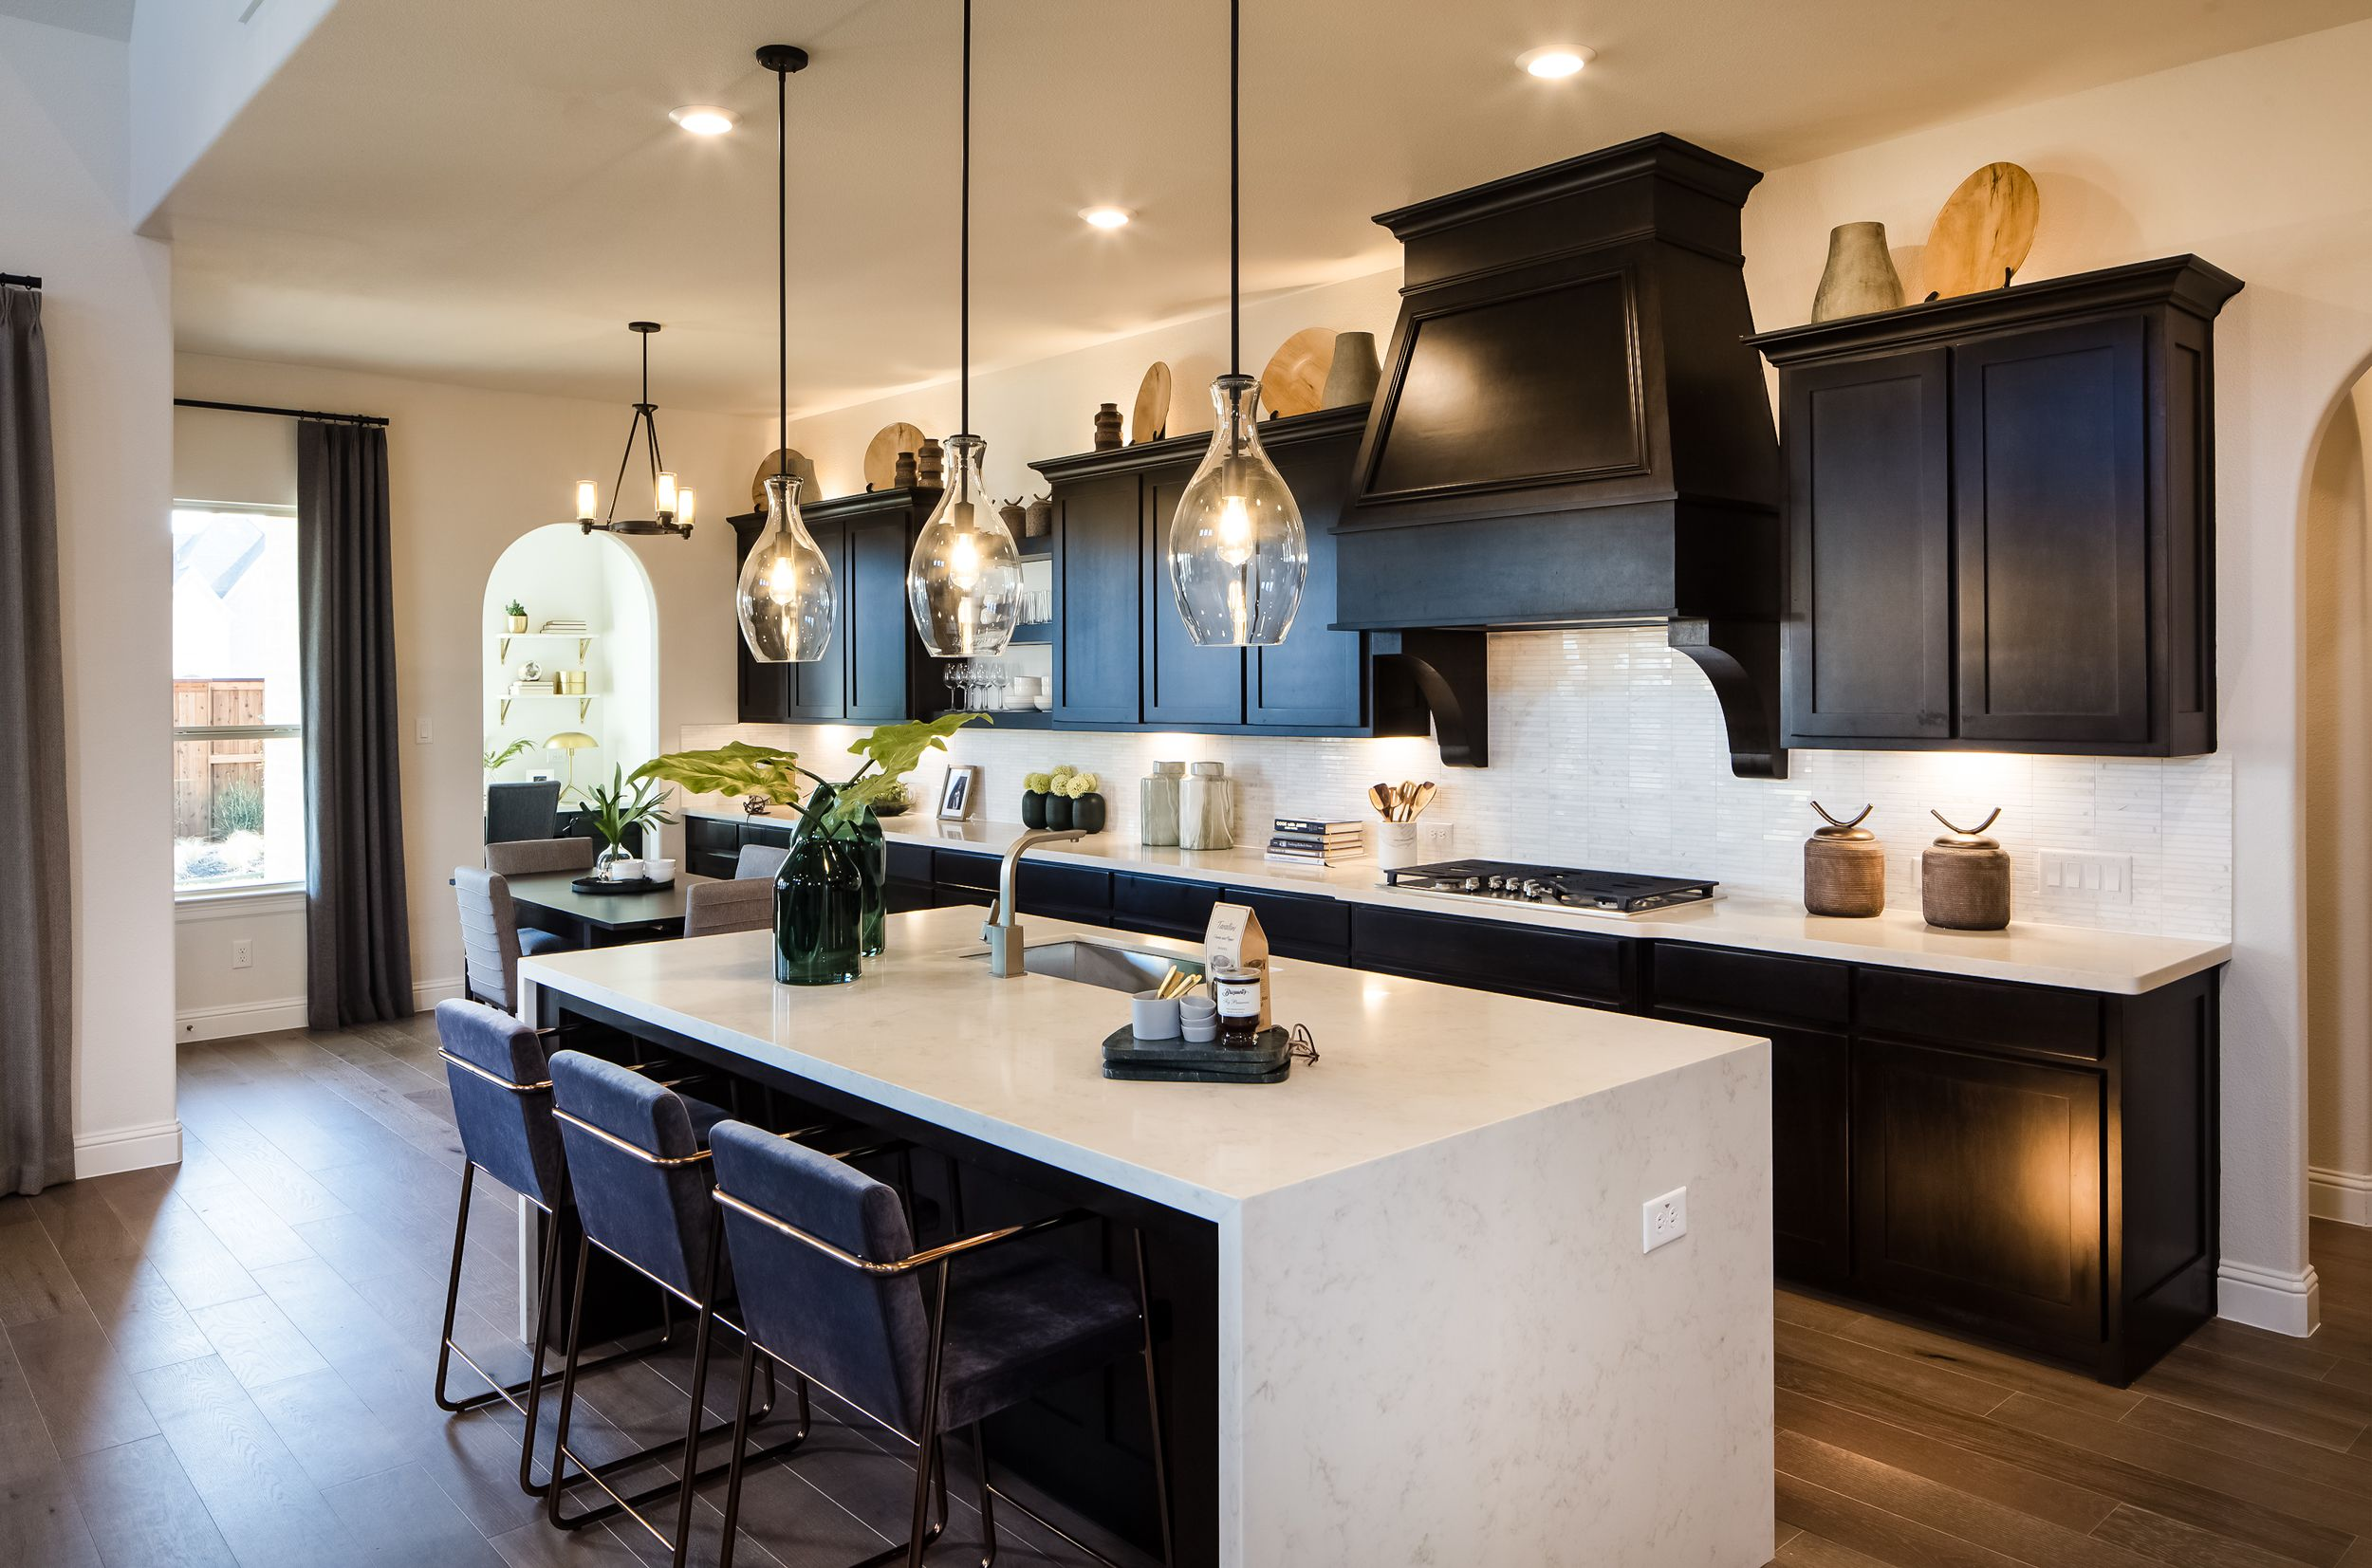 This Gourmet Kitchen Is Just The Beginning Newhomes Dfw Contemporary Kitchen Cabinets Kitchen Interior Home Kitchens